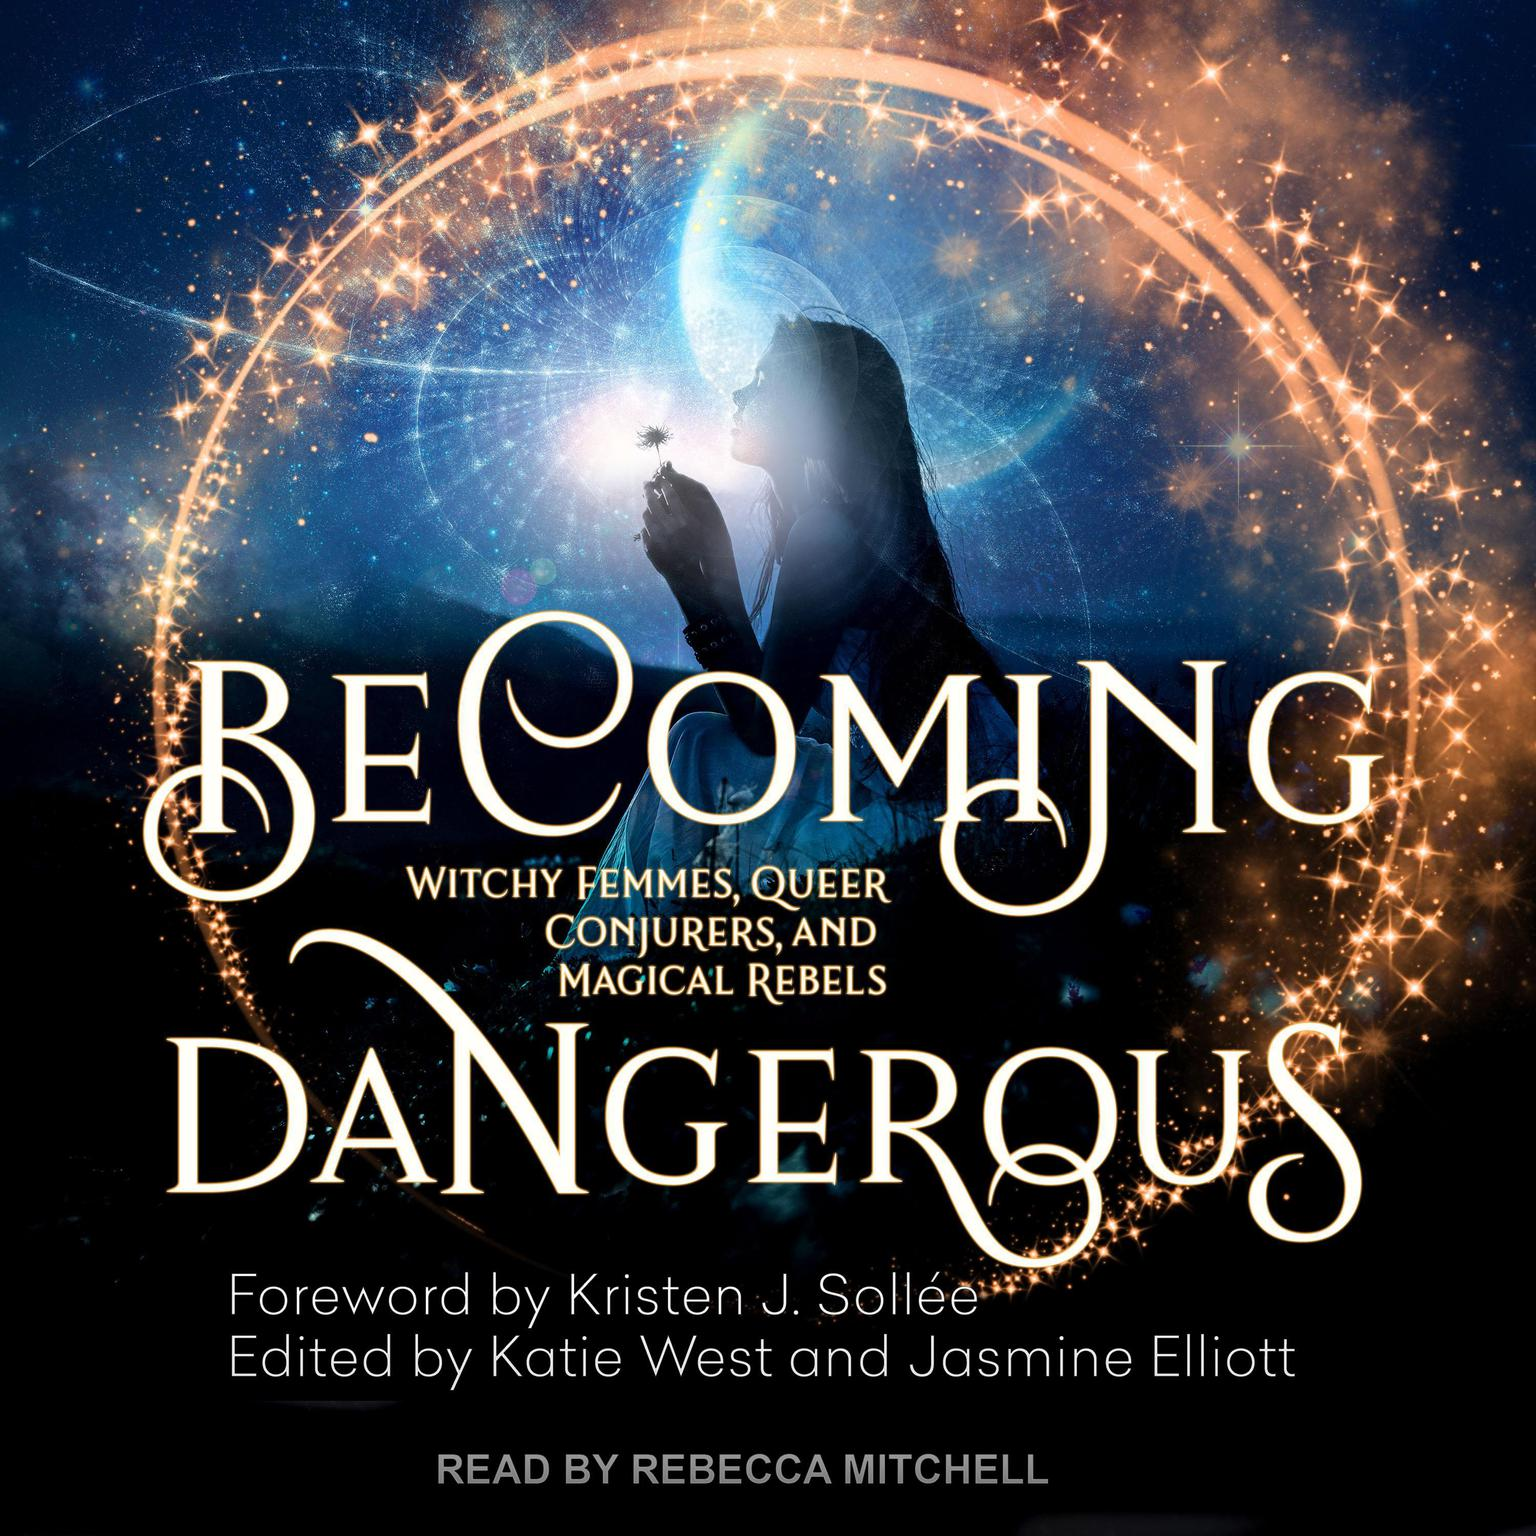 Printable Becoming Dangerous: Witchy Femmes, Queer Conjurers, and Magical Rebels Audiobook Cover Art